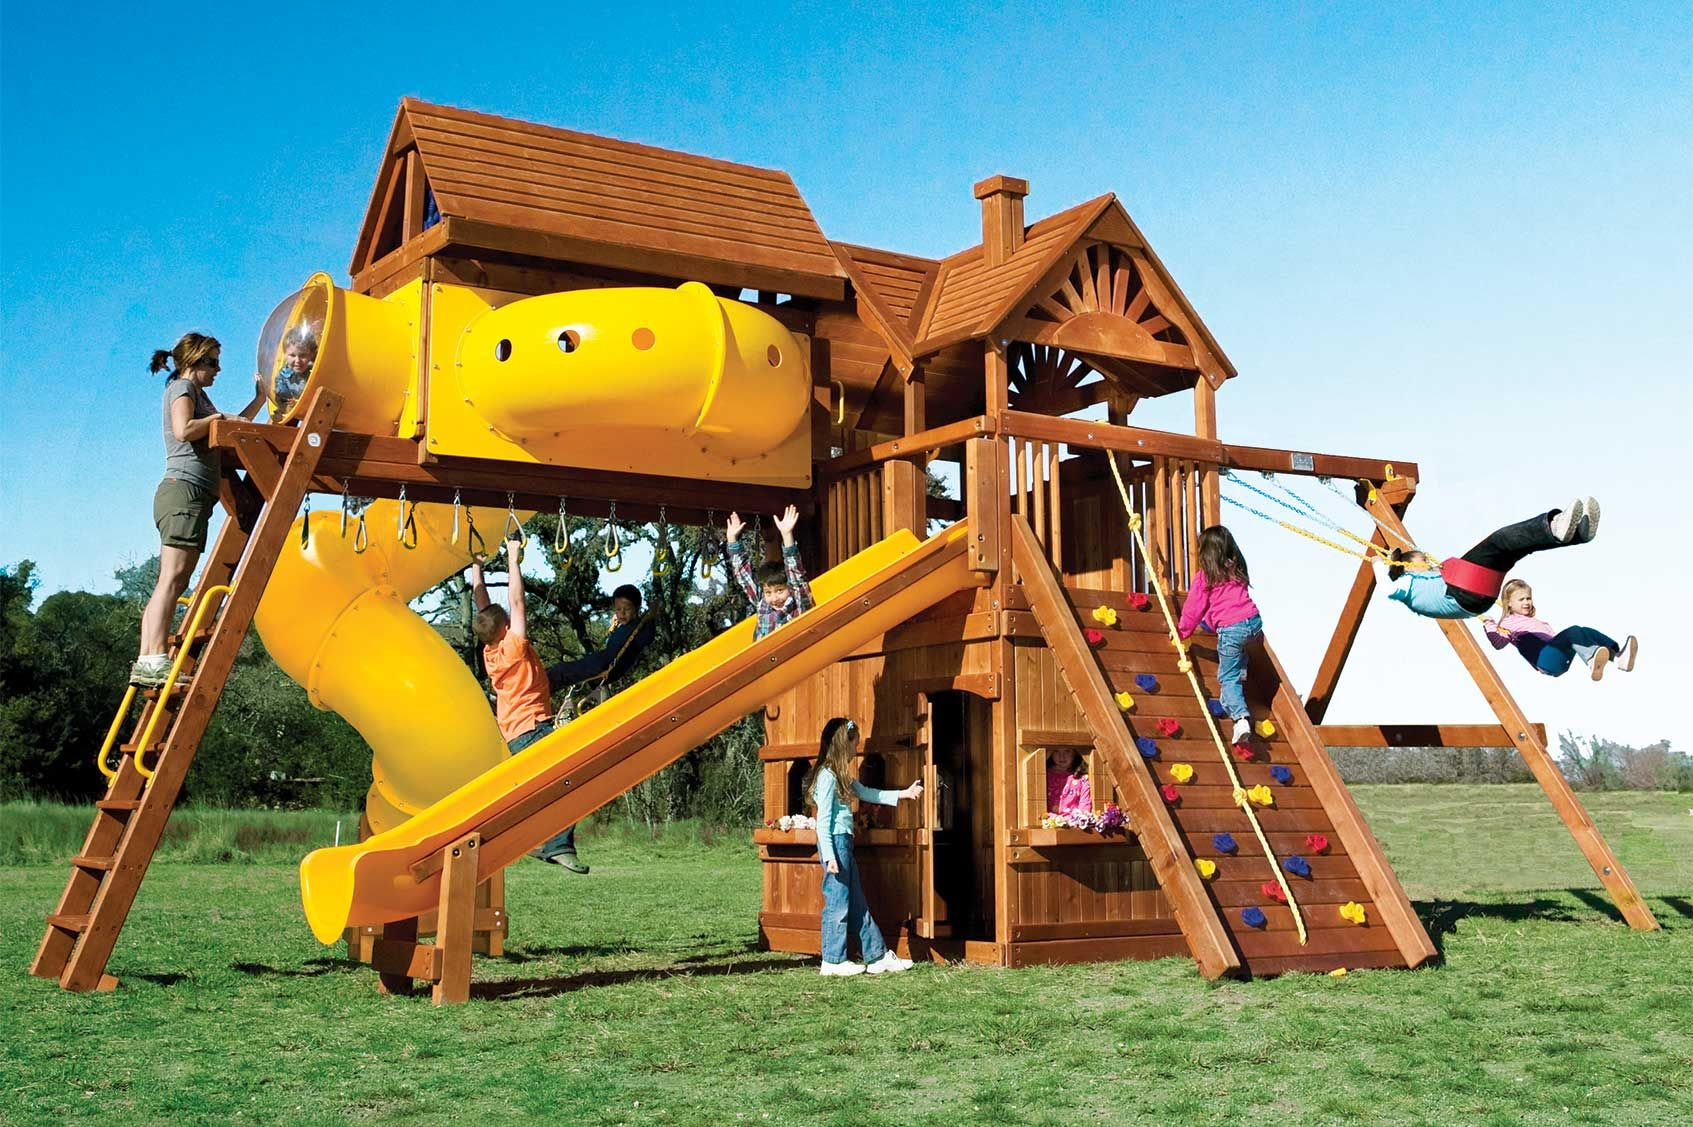 Swing Set Accessories Rainbow play systems, Club house